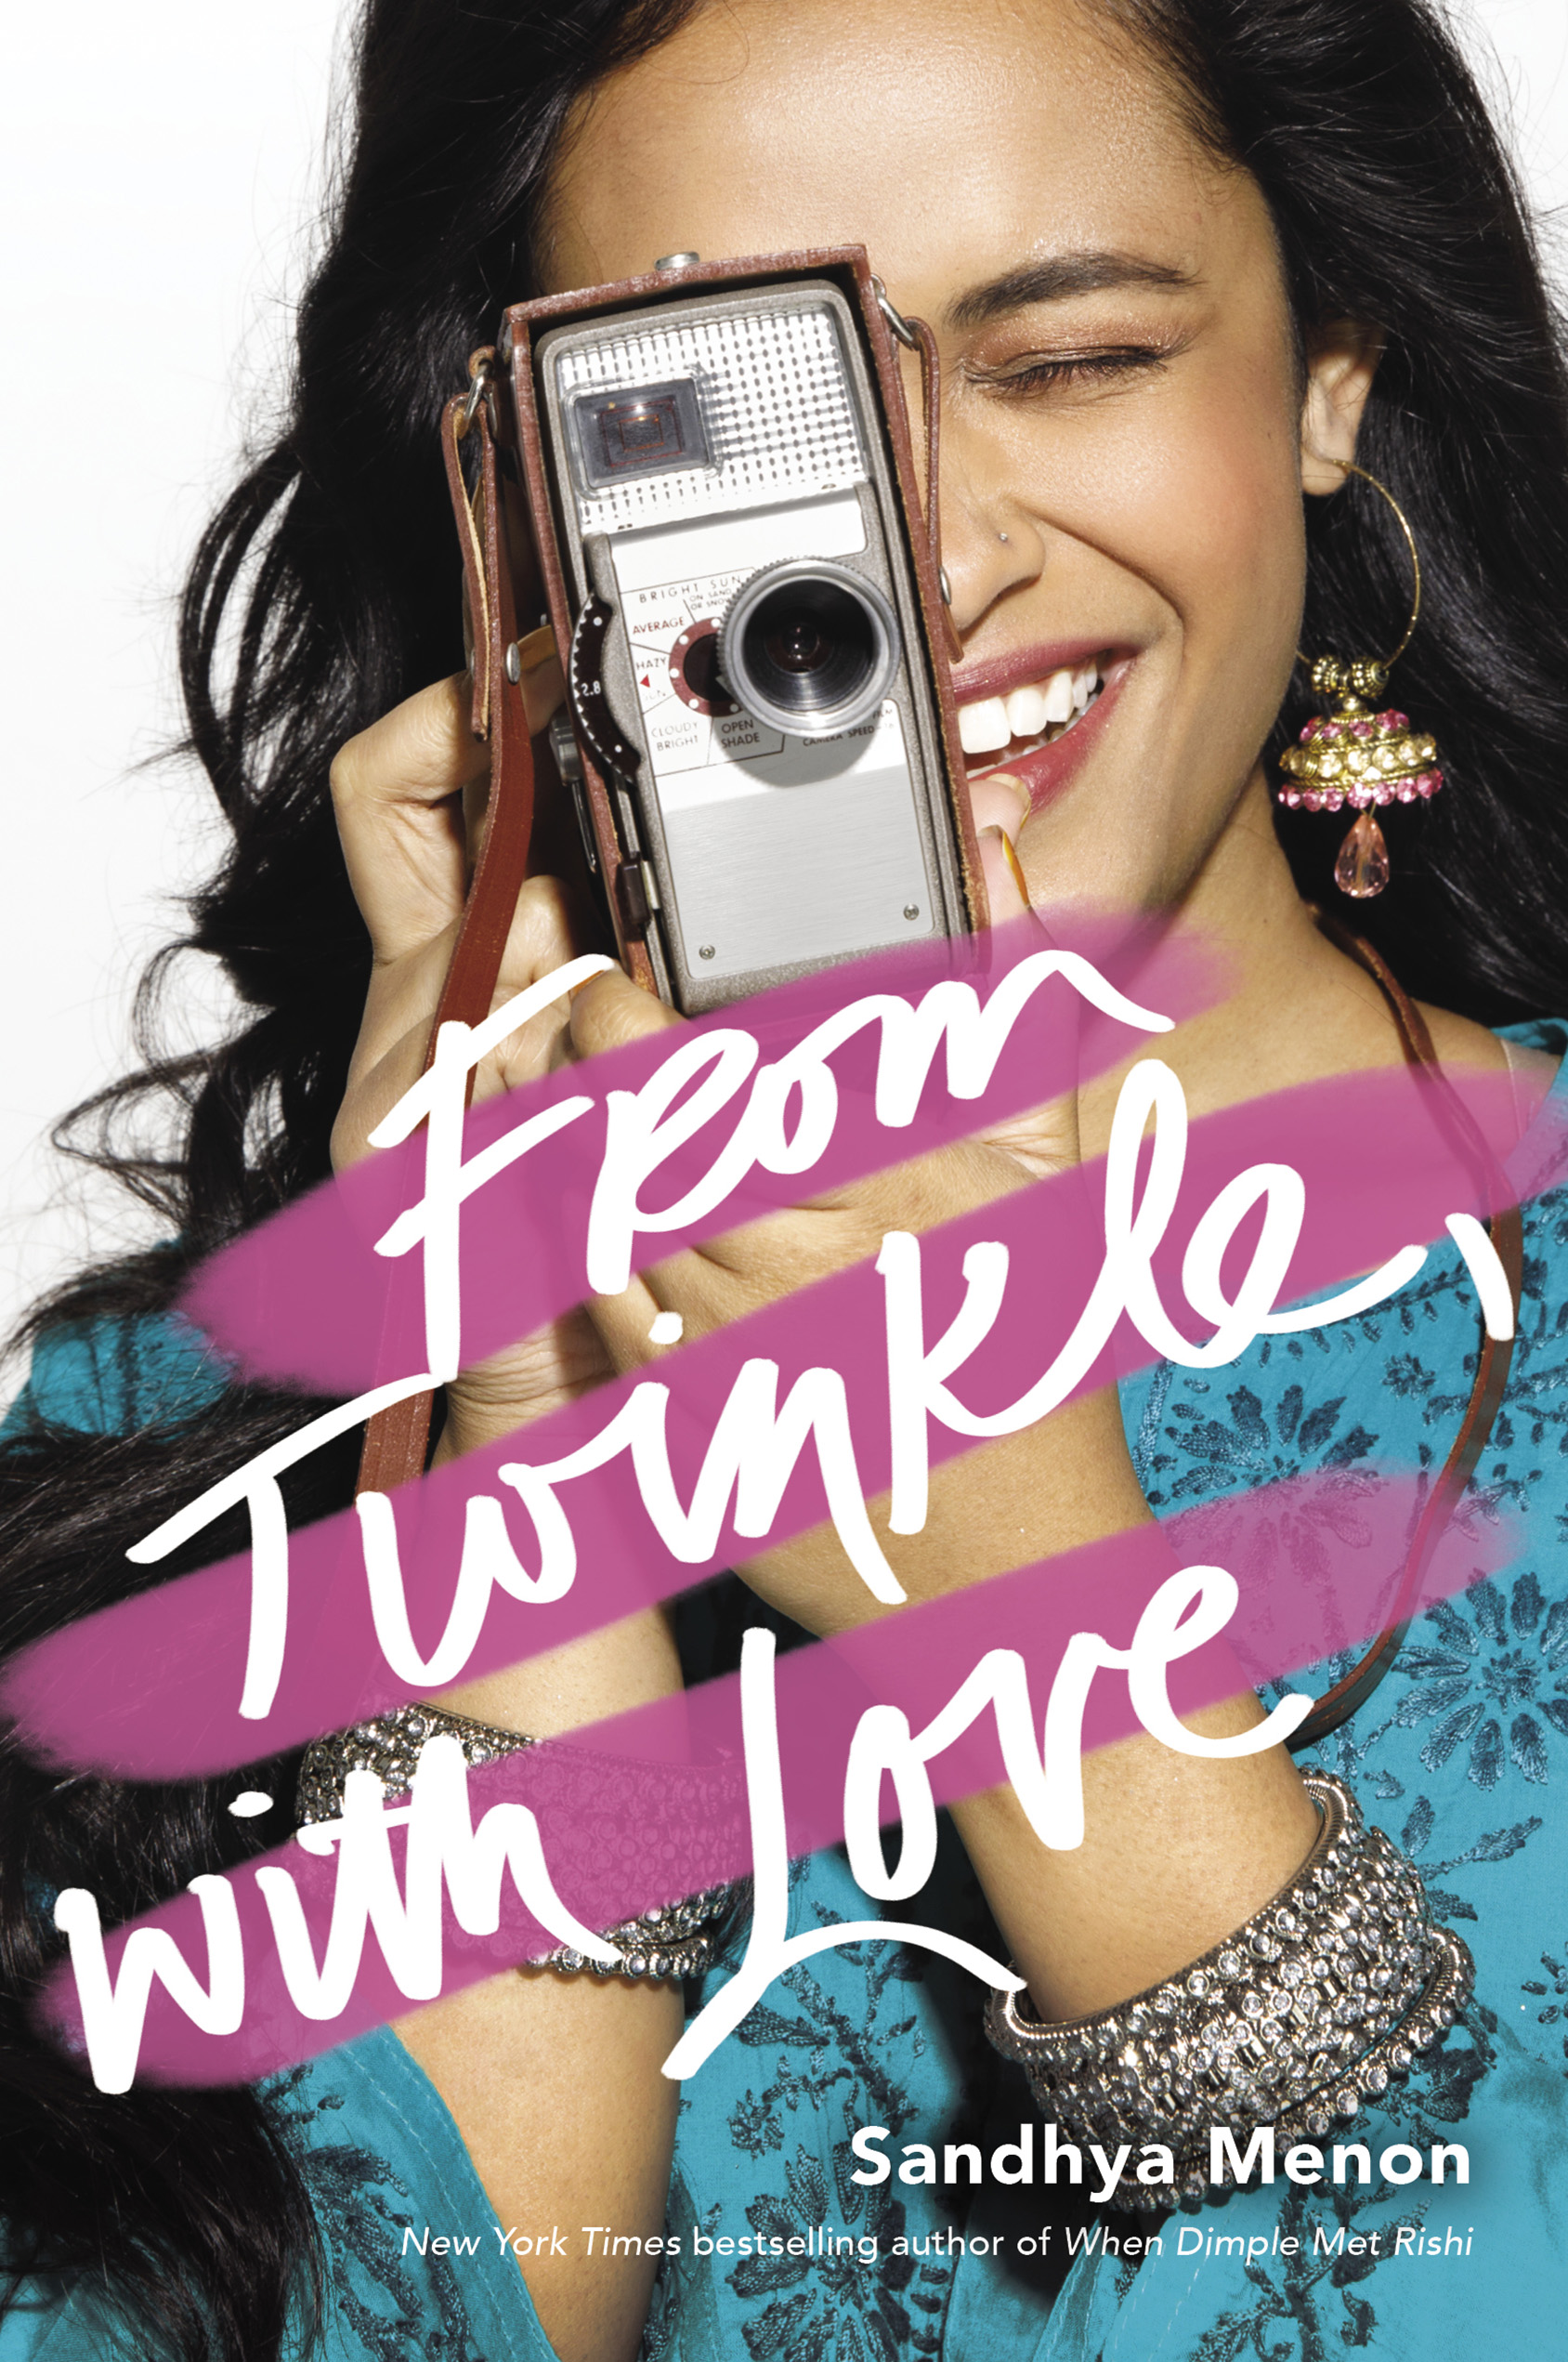 Photo: Book Cover From Twinkle With Love Sandhya Menon